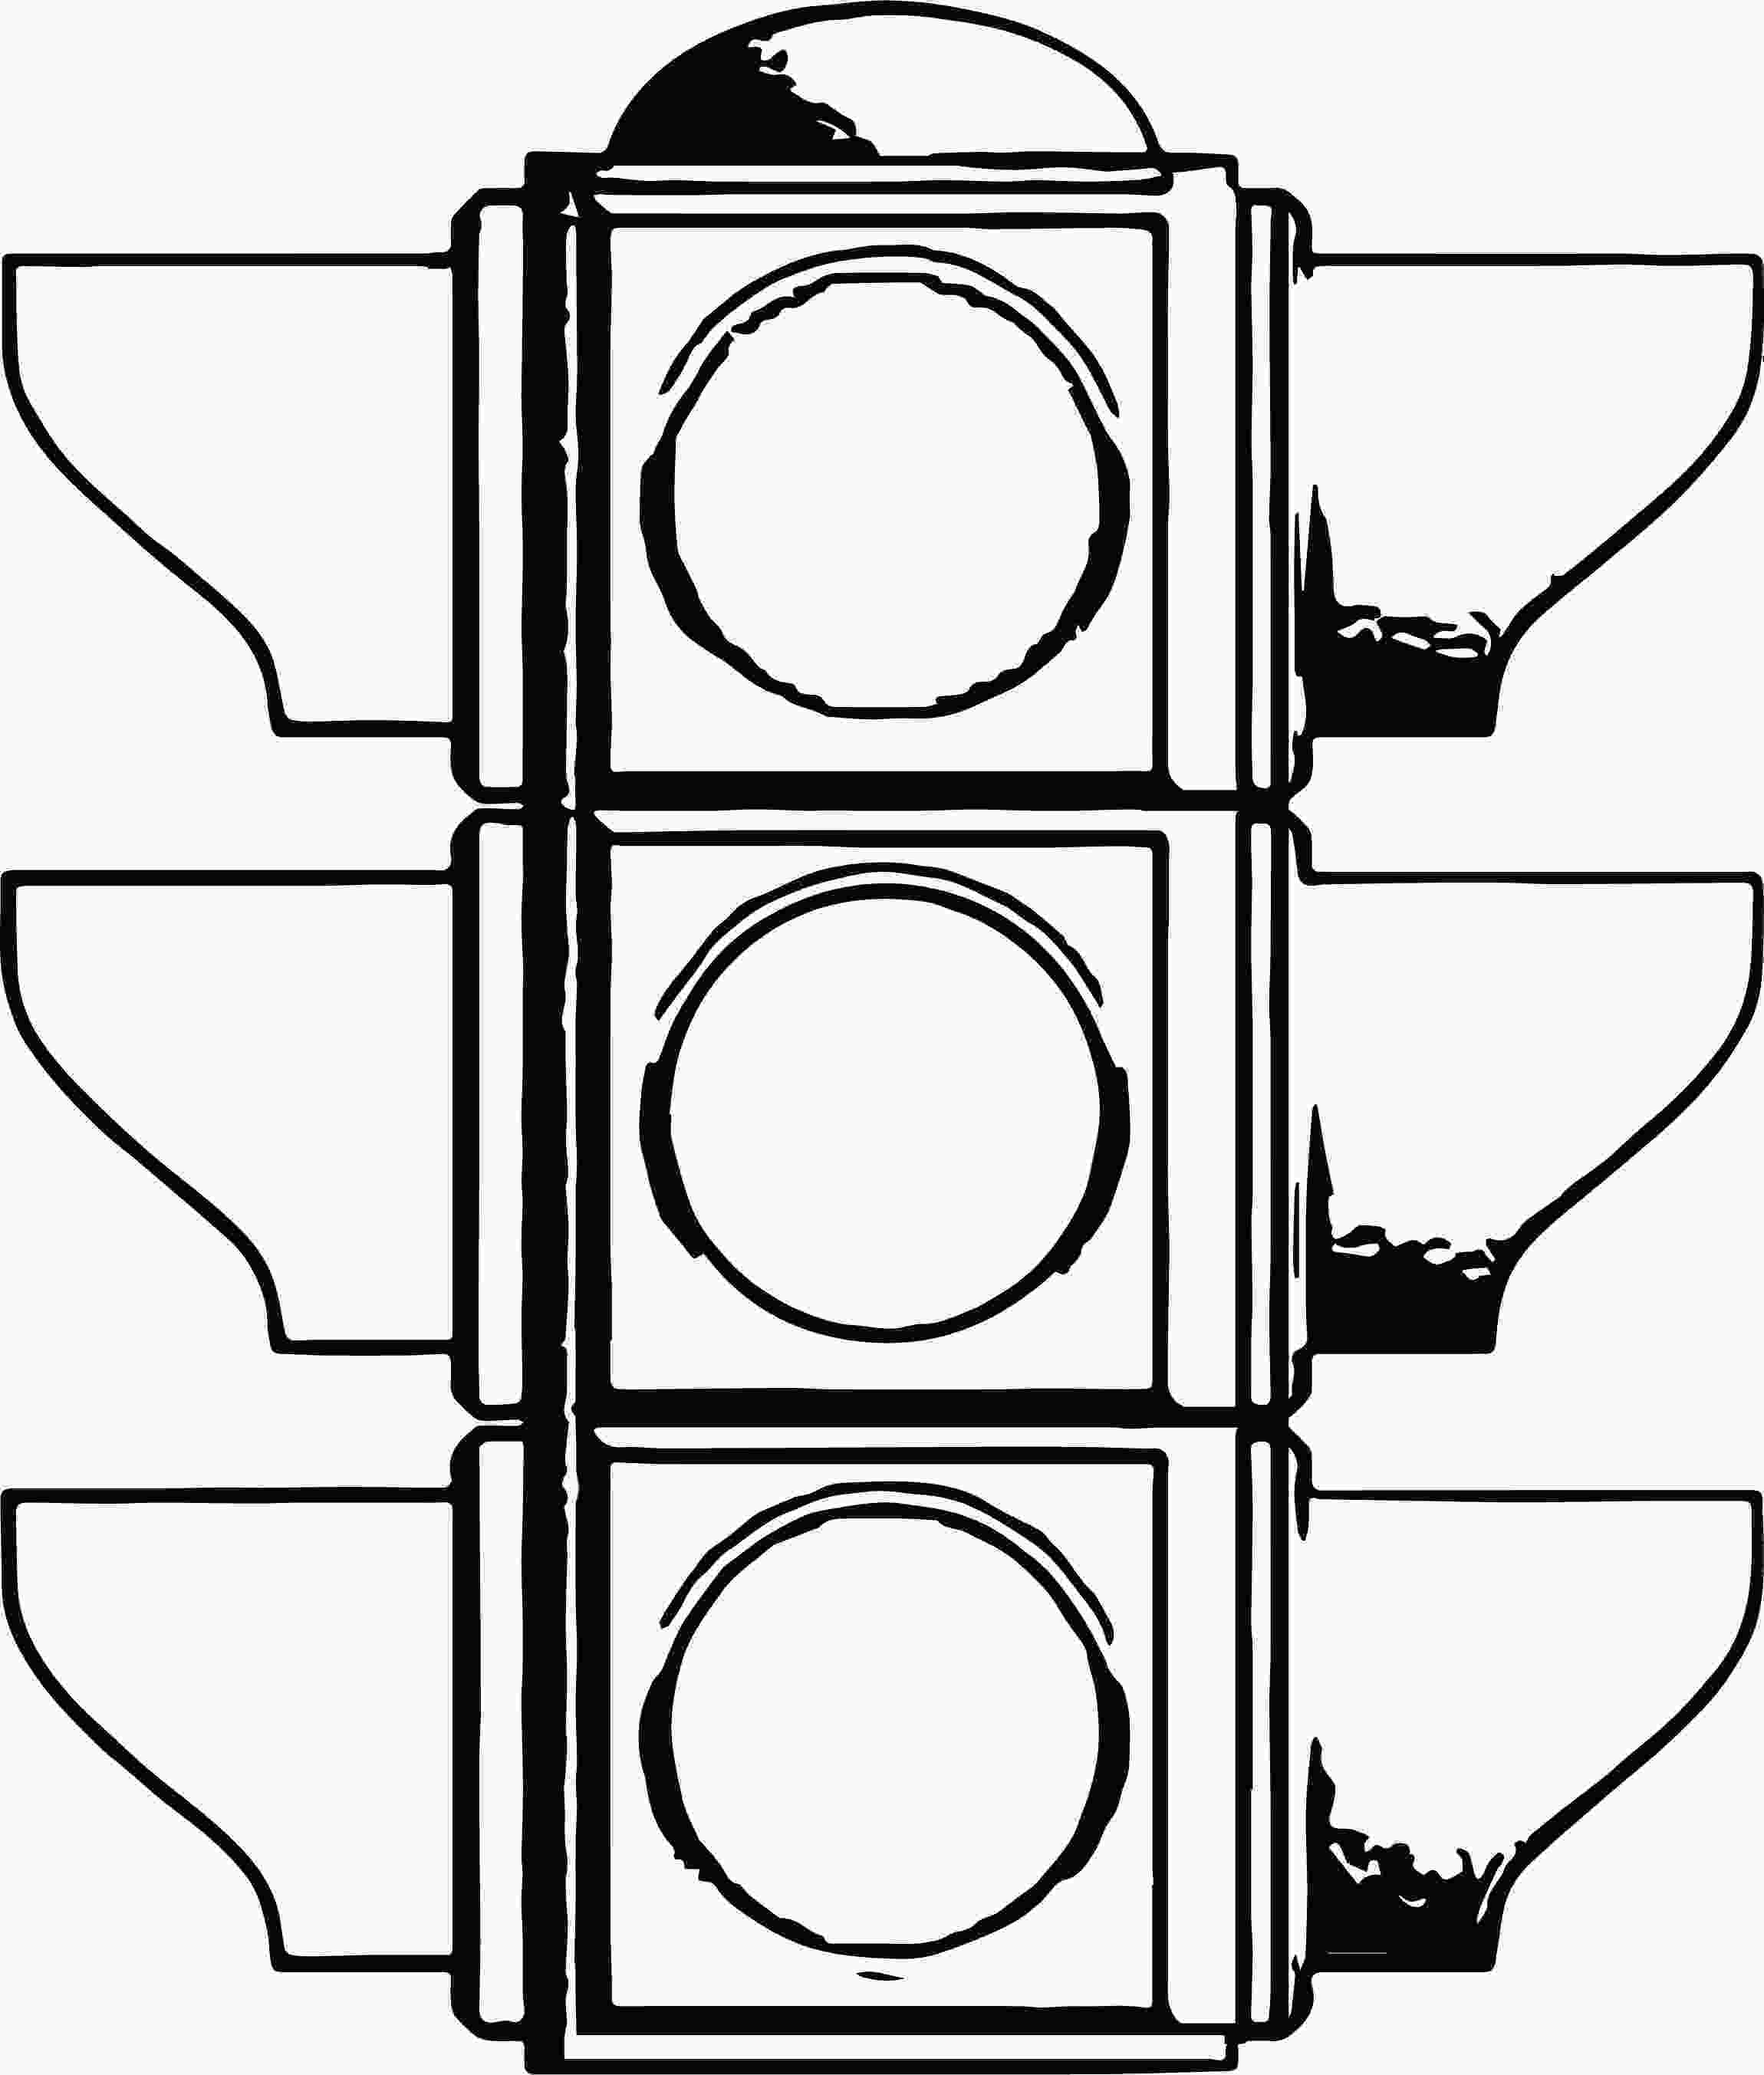 traffic light coloring page traffic light all coloring page wecoloringpagecom